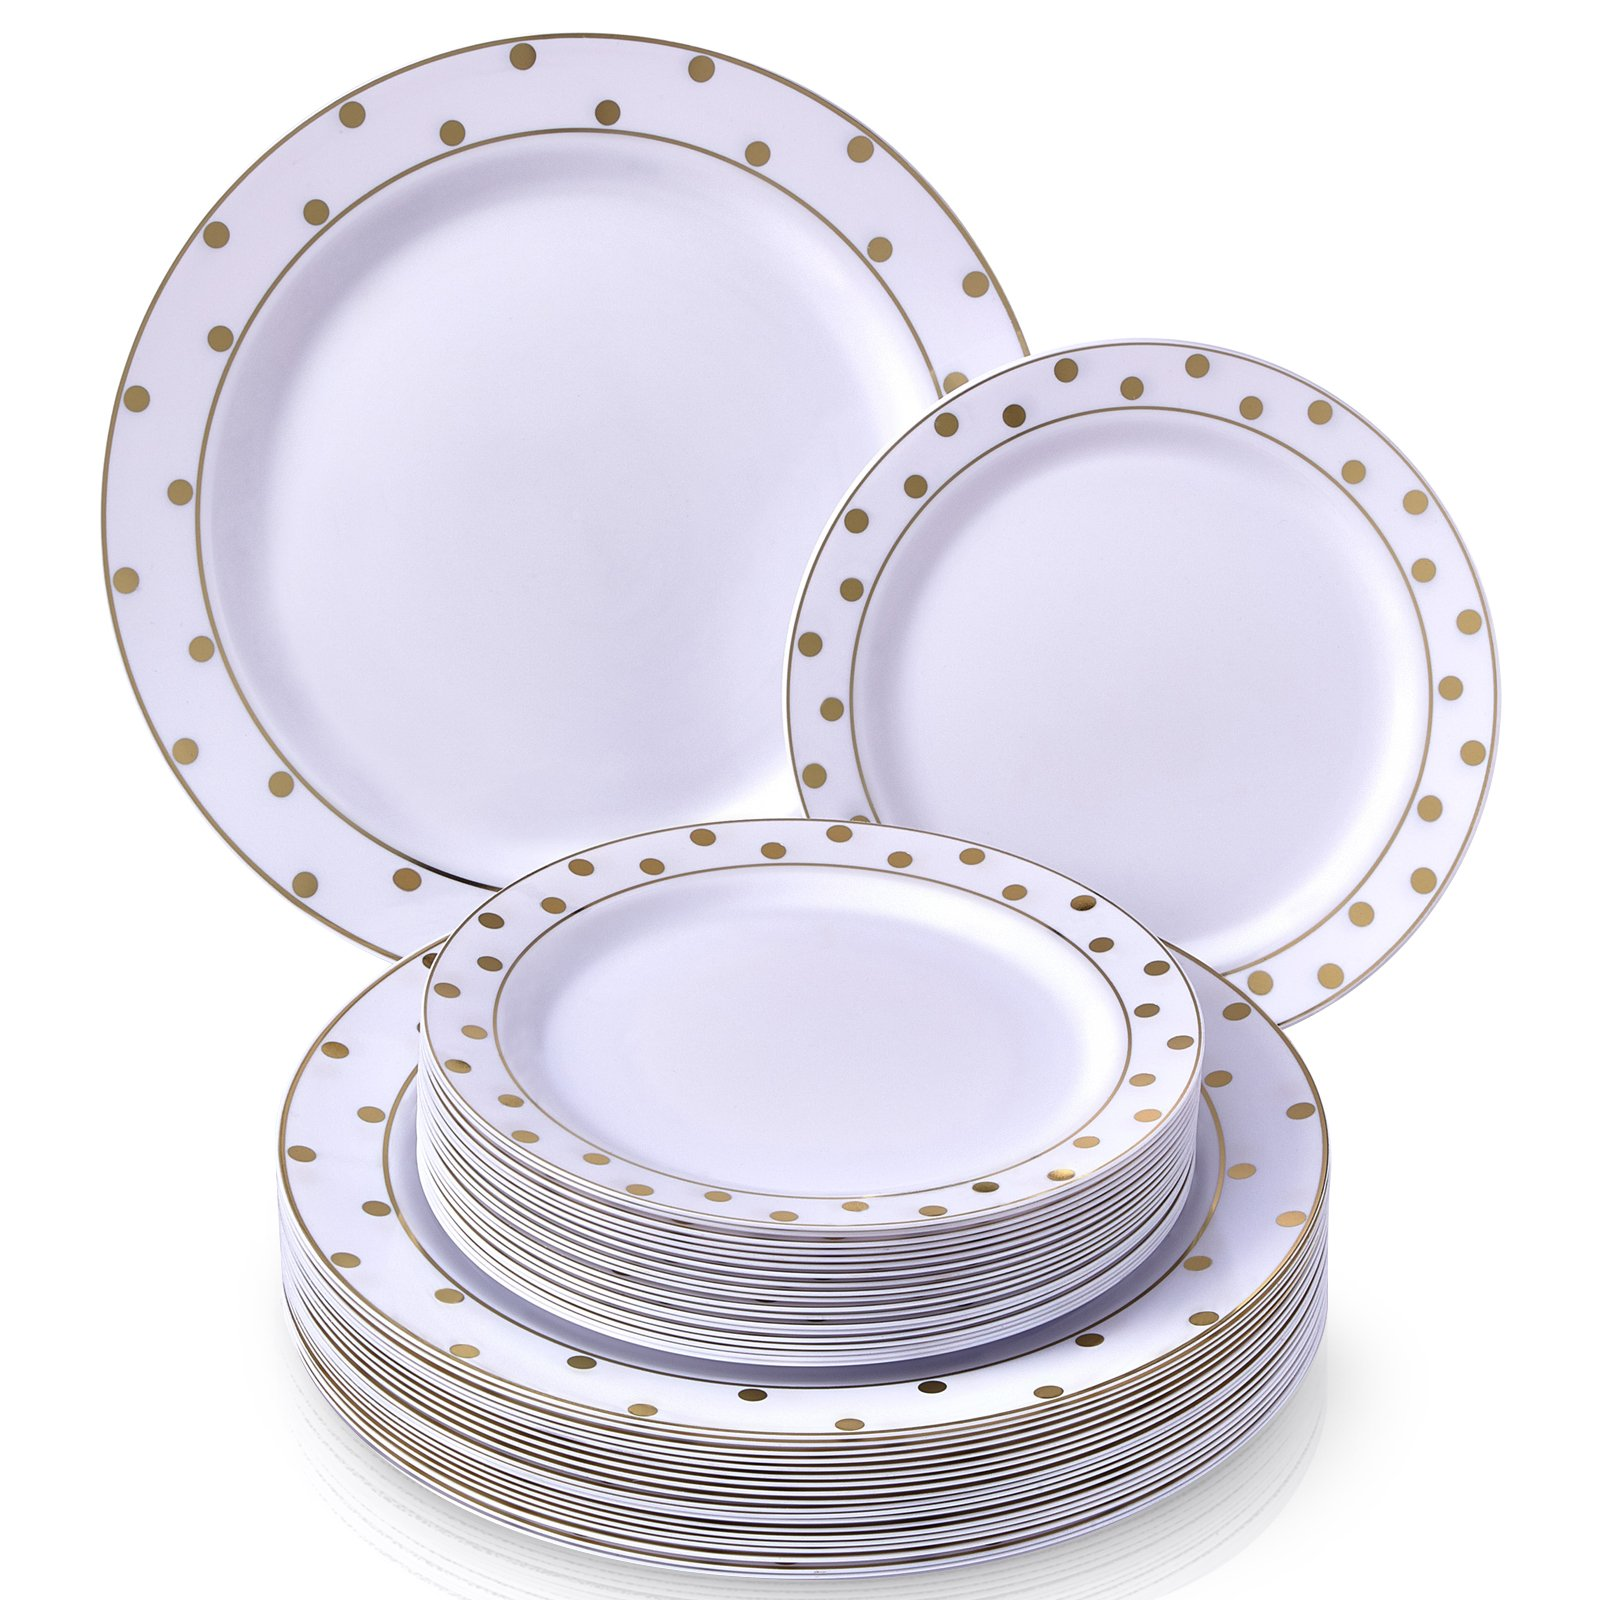 PARTY DISPOSABLE 40 PC DINNERWARE SET   20 Dinner Plates   20 Salad/Dessert Plates   Heavy Duty Disposable Plastic Dishes   Elegant Fine China Look   for Upscale Wedding and Dining (Dots– White/Gold)